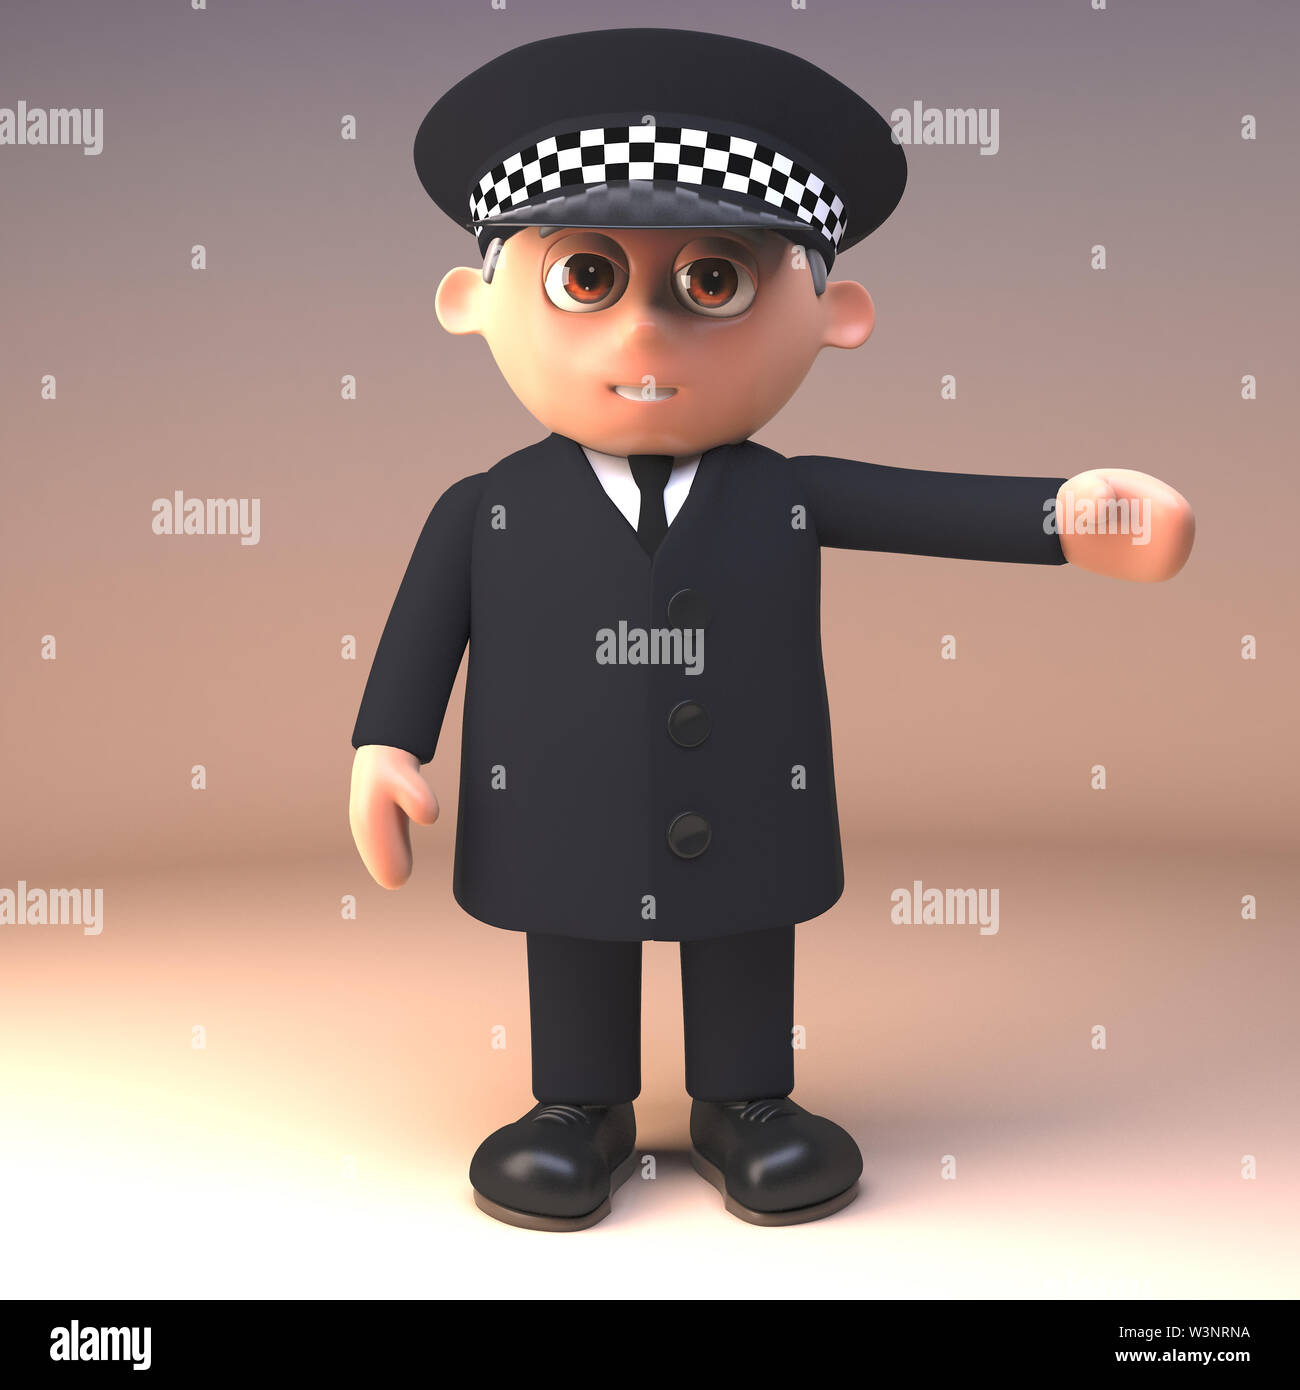 Police officer on duty and in uniform gestures with arm to the left, 3d illustration render - Stock Image